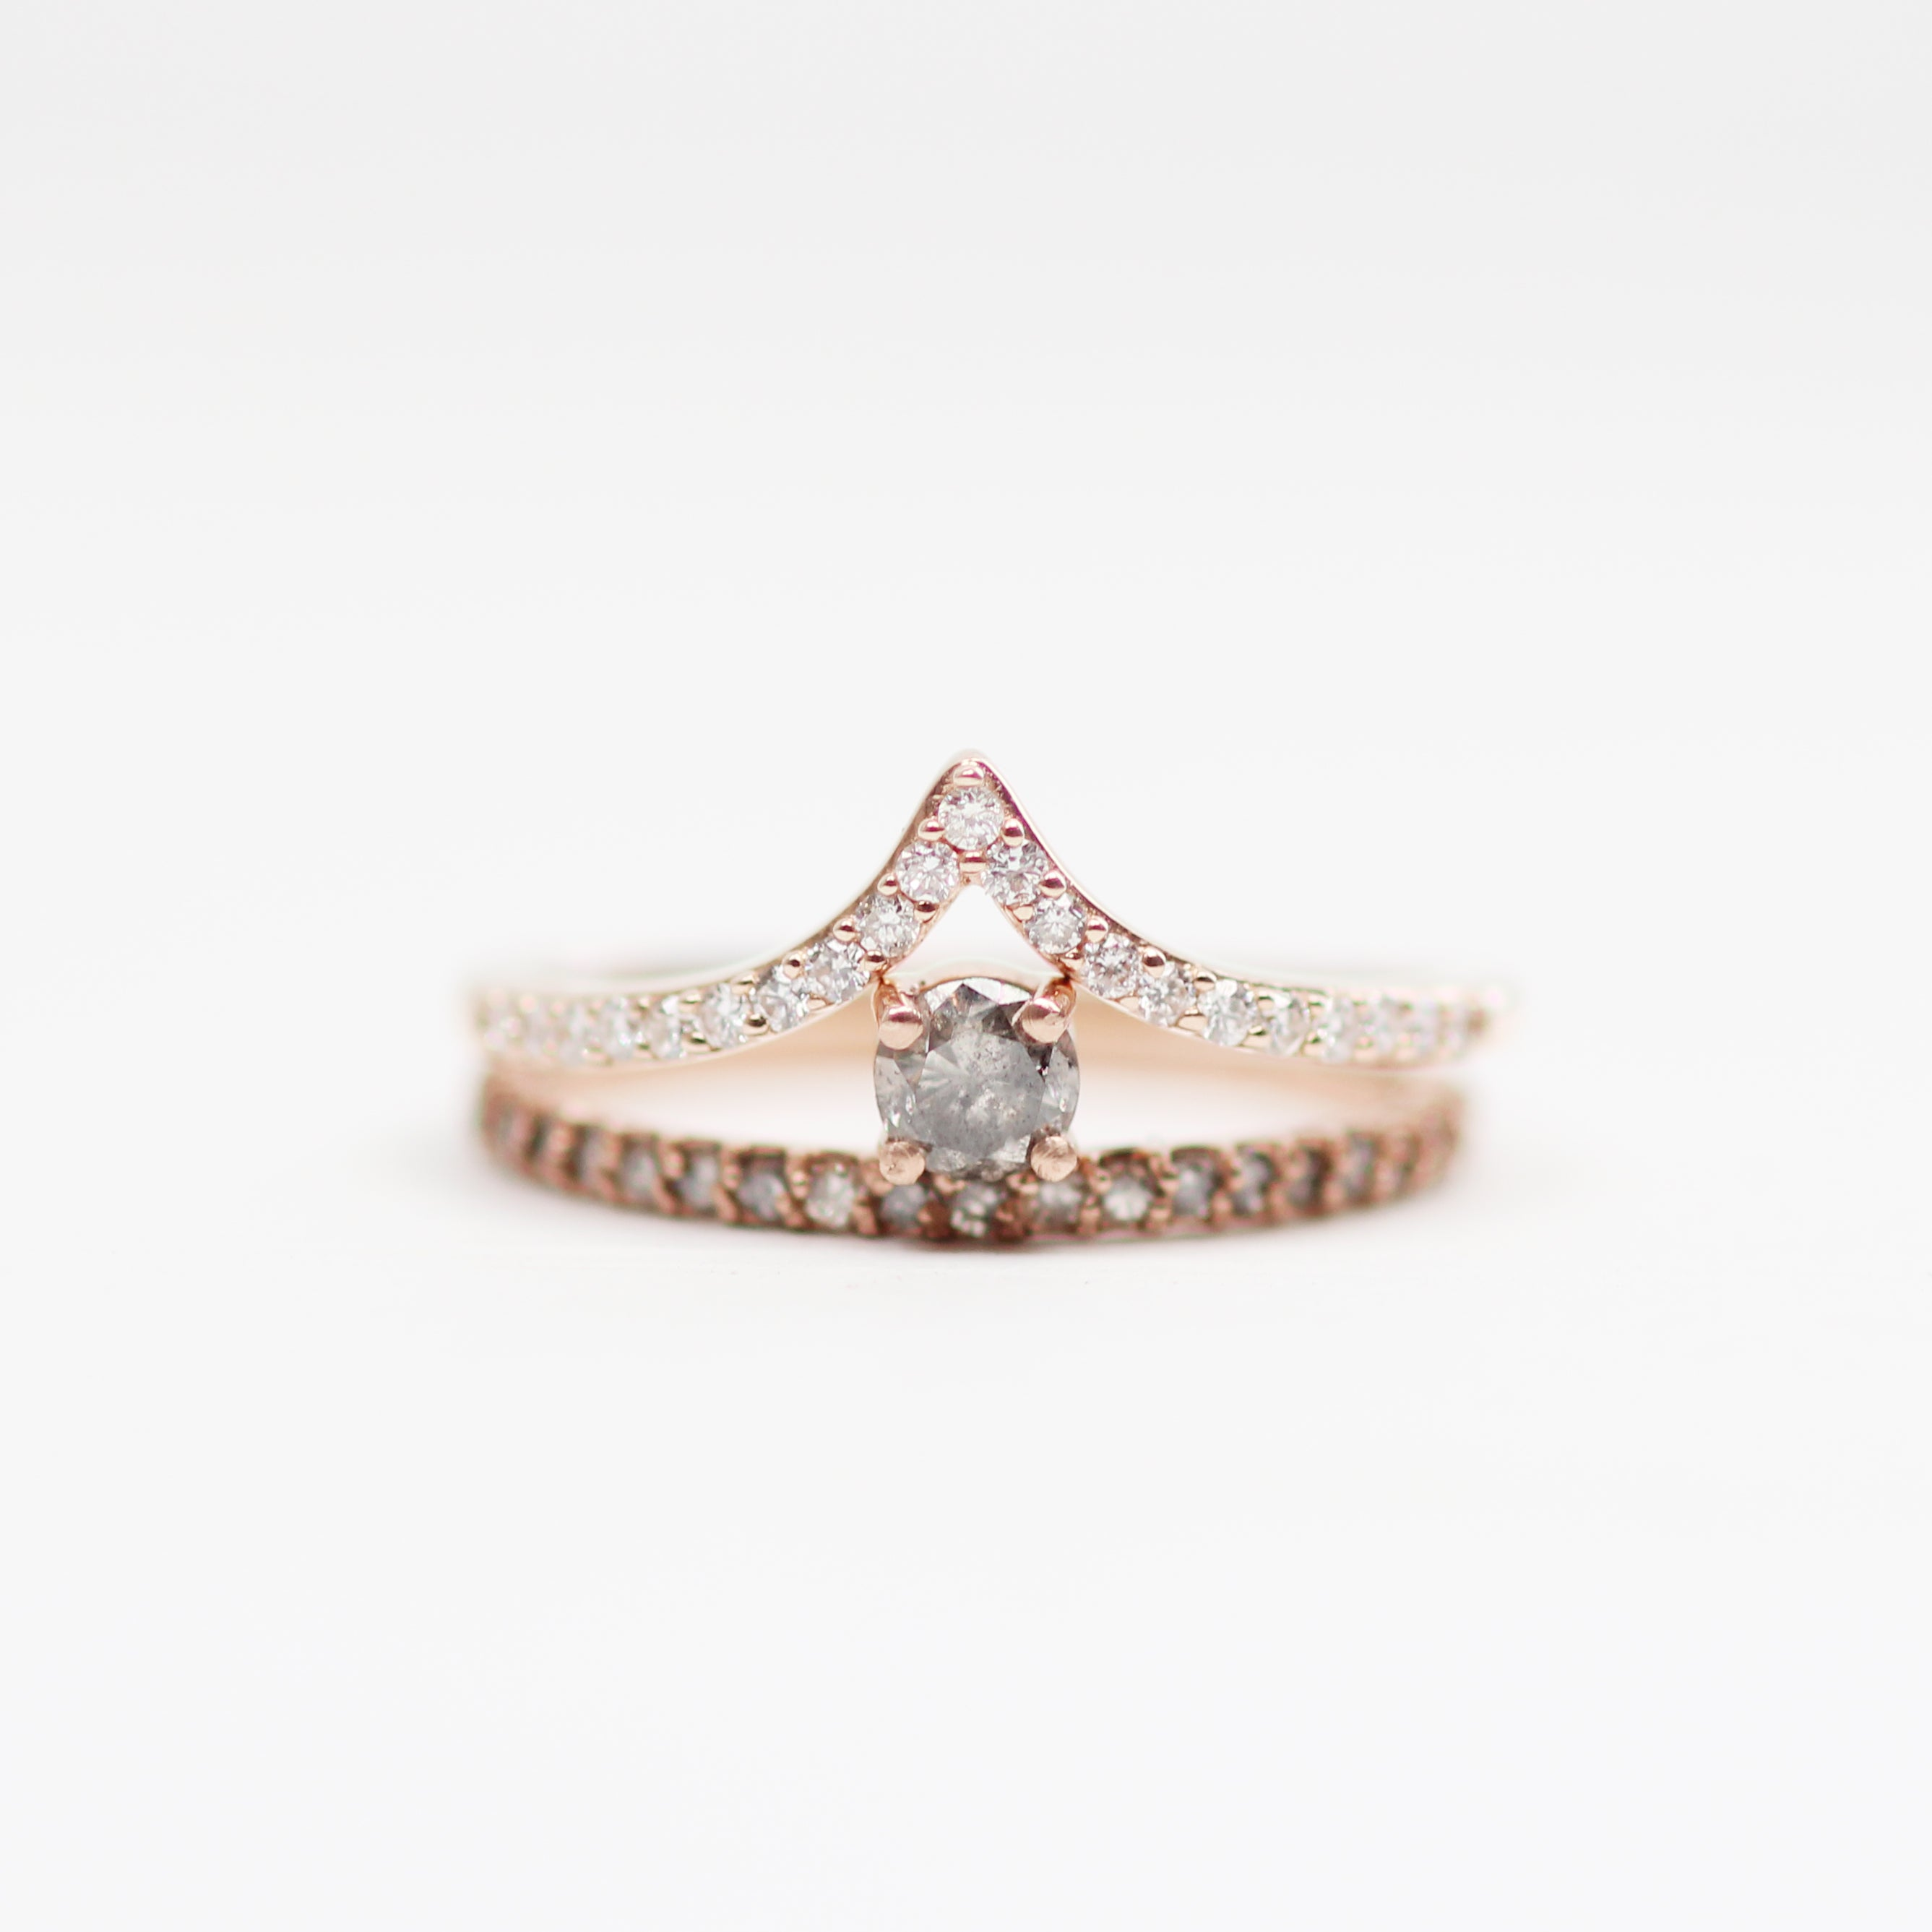 Gray Nellie Minimal Ring - Asymmetrical Diamond Band Ring in Gold - Celestial Diamonds ® by Midwinter Co.